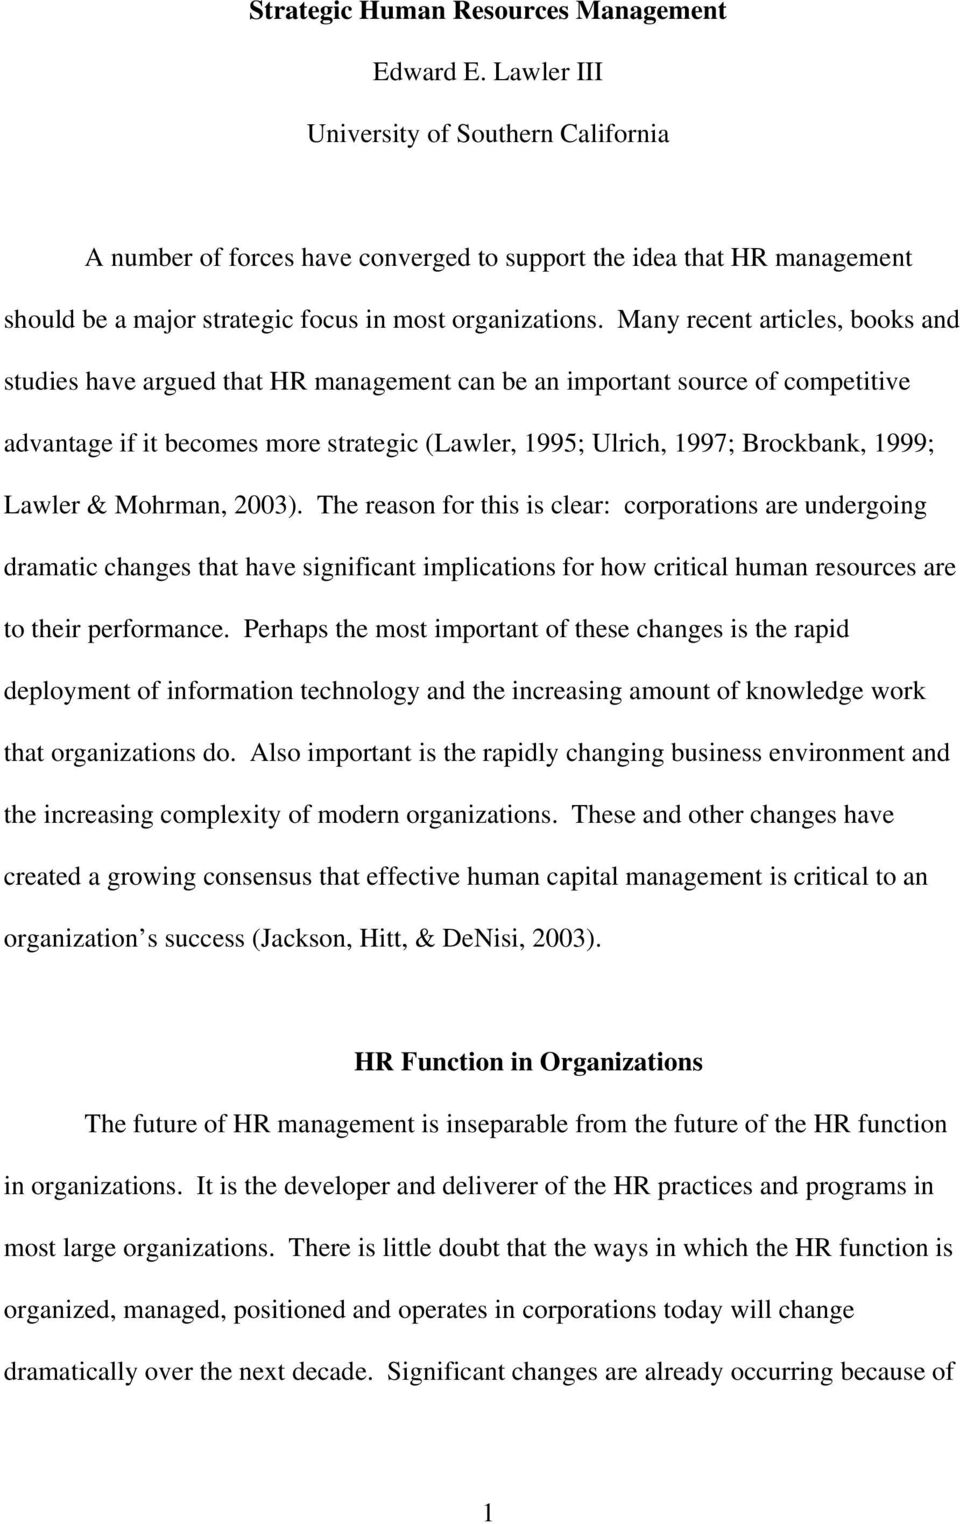 Many recent articles, books and studies have argued that HR management can be an important source of competitive advantage if it becomes more strategic (Lawler, 1995; Ulrich, 1997; Brockbank, 1999;